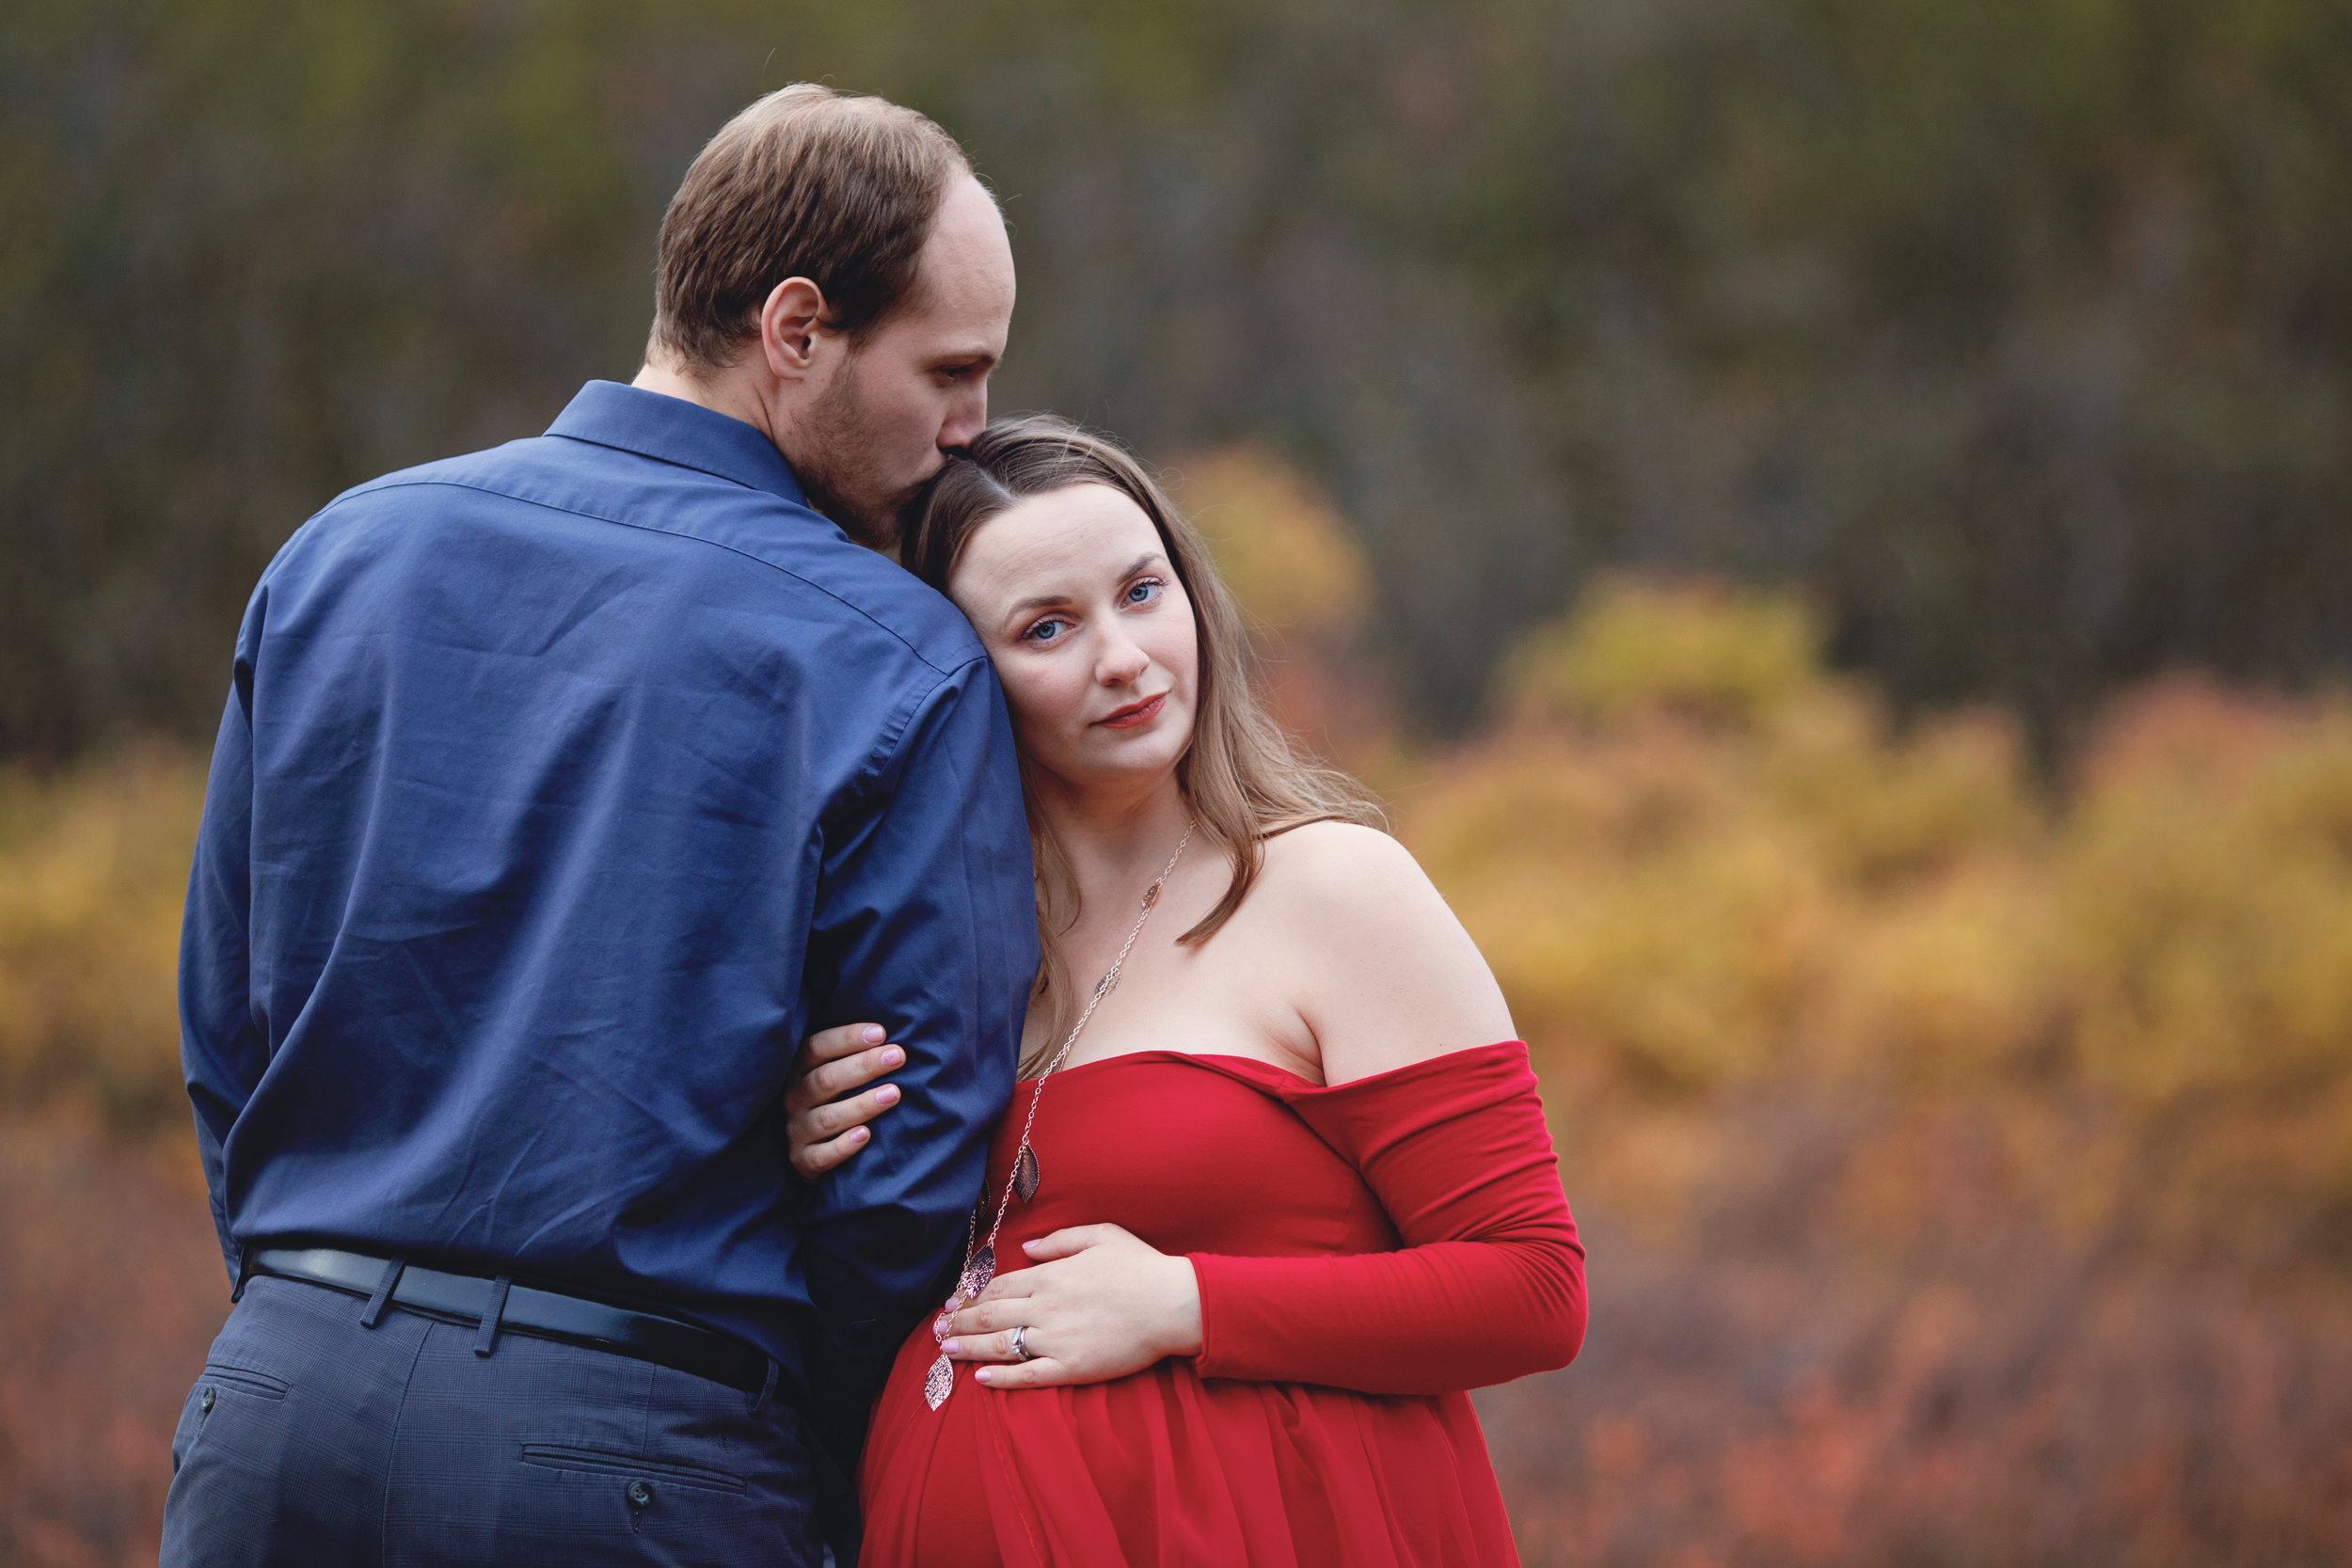 anchorage-maternity-photographer-4.jpg